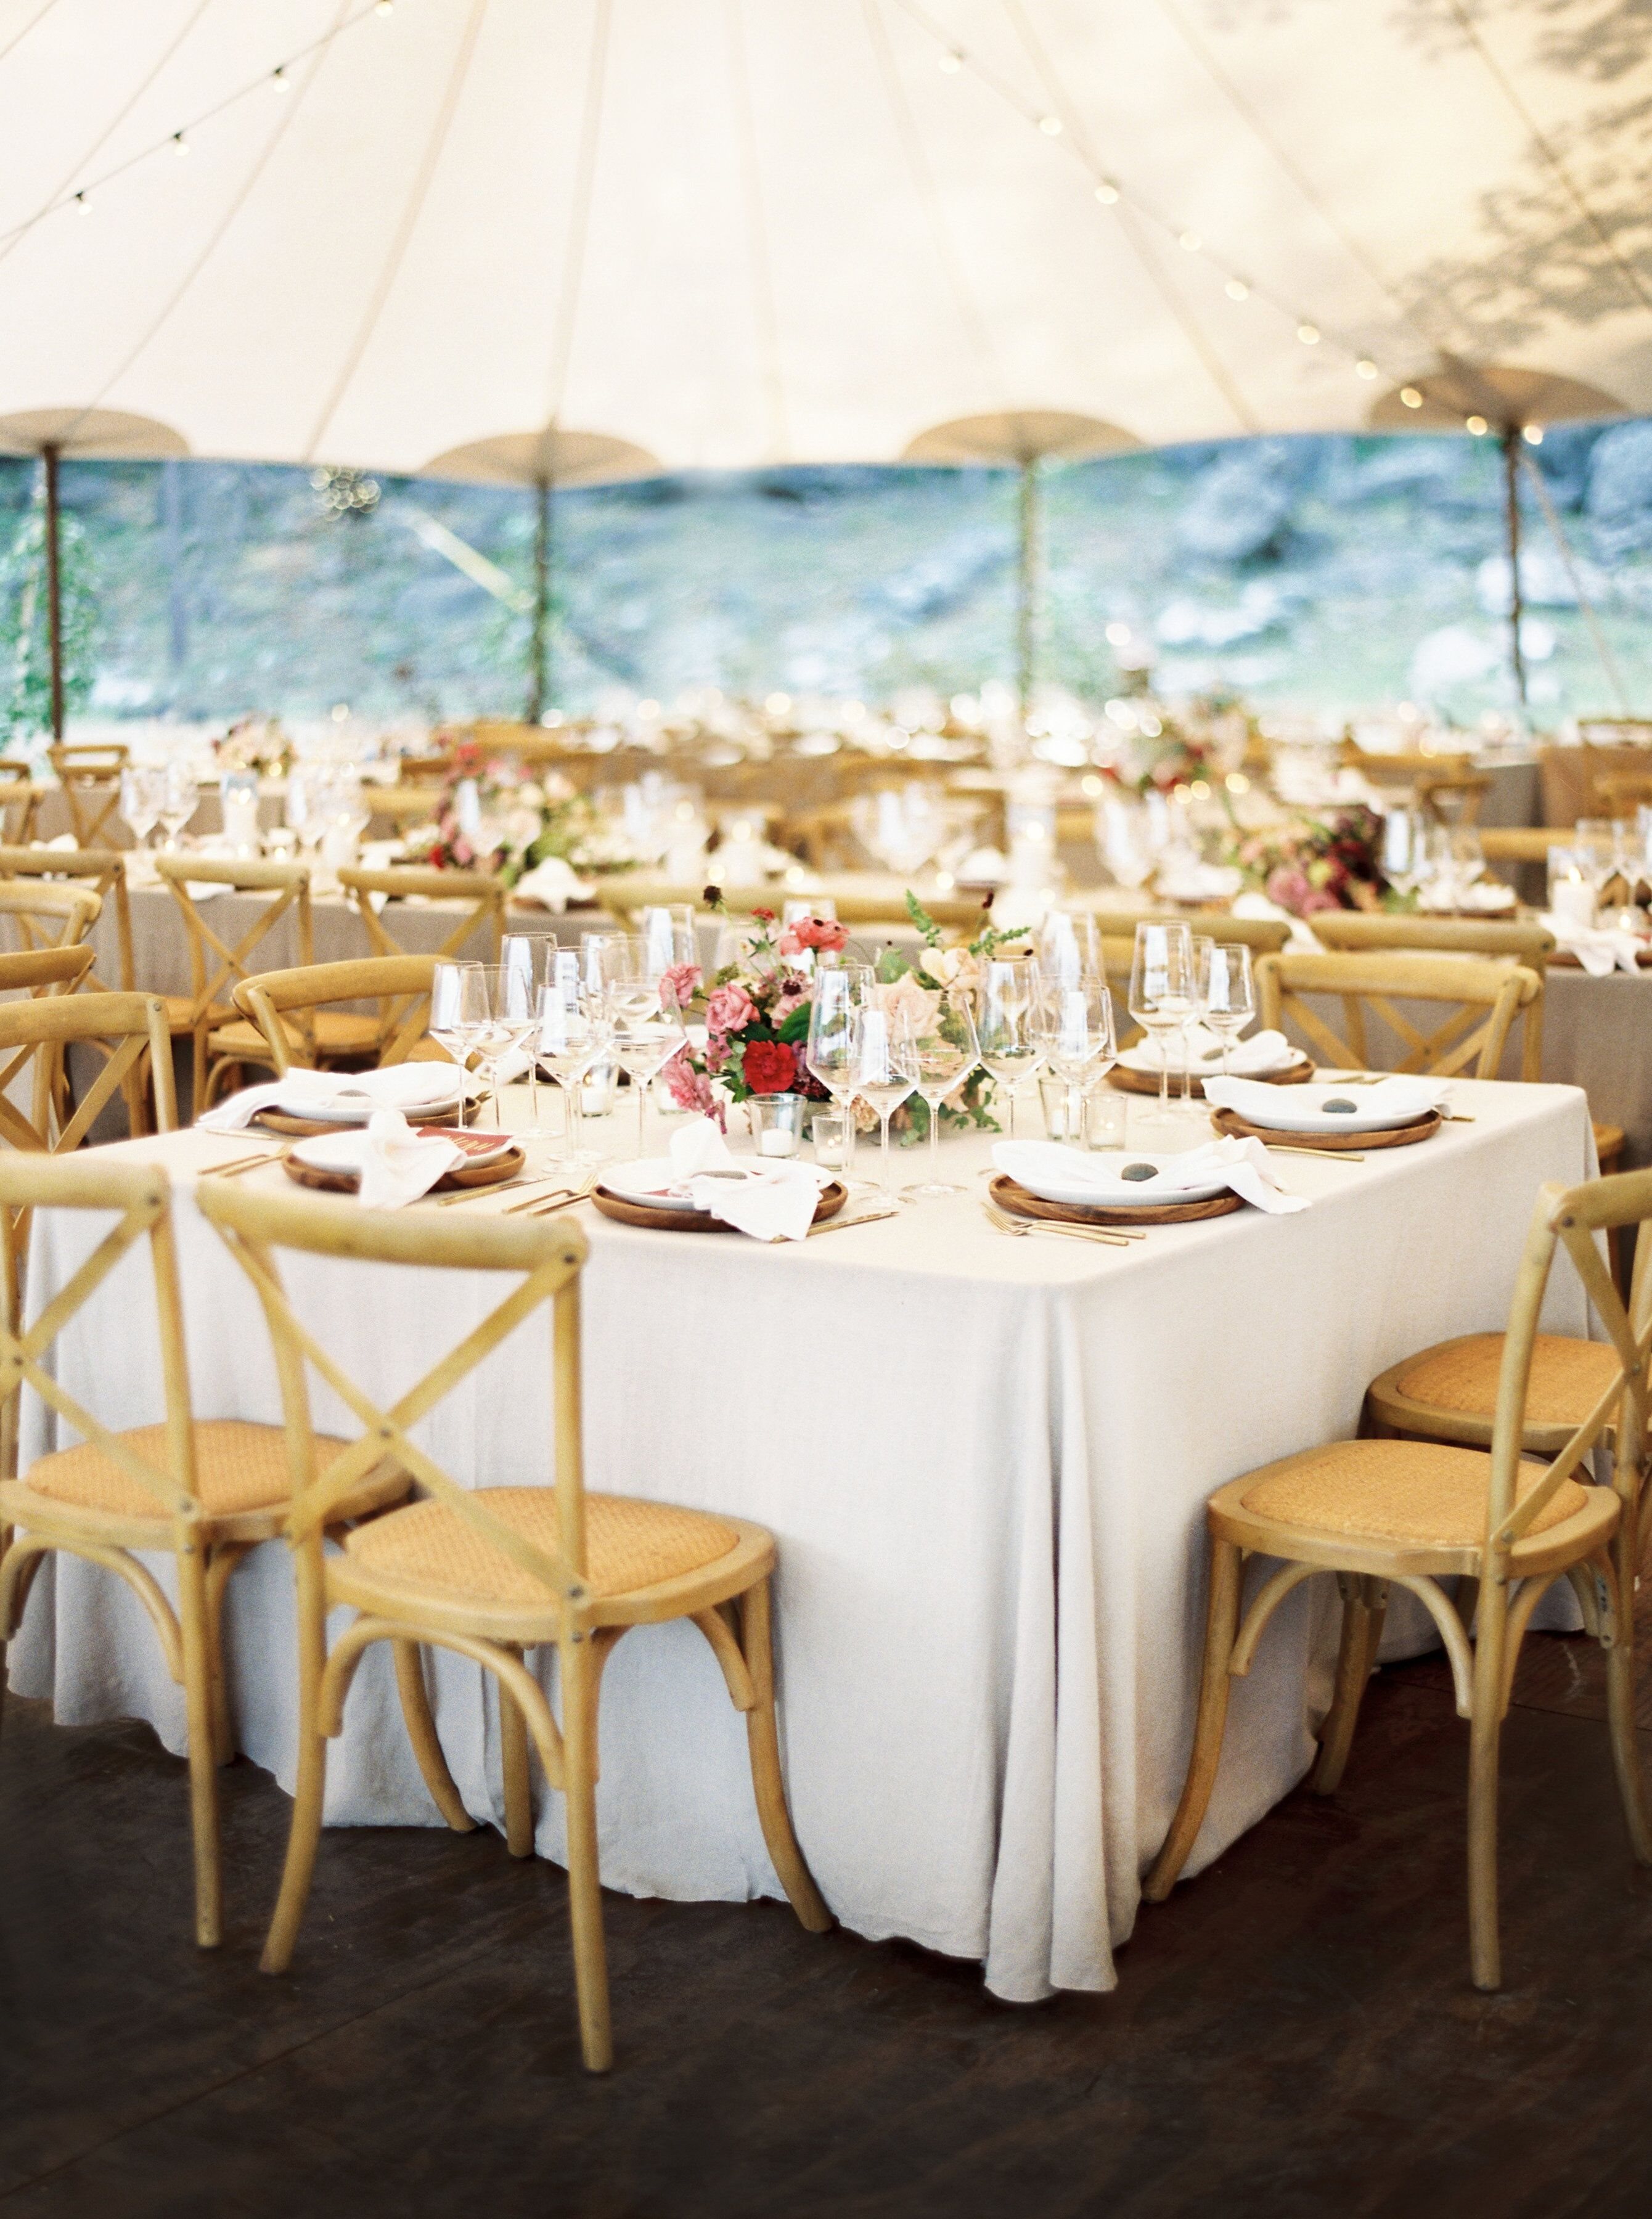 kelsey jacob wedding reception tables in tent